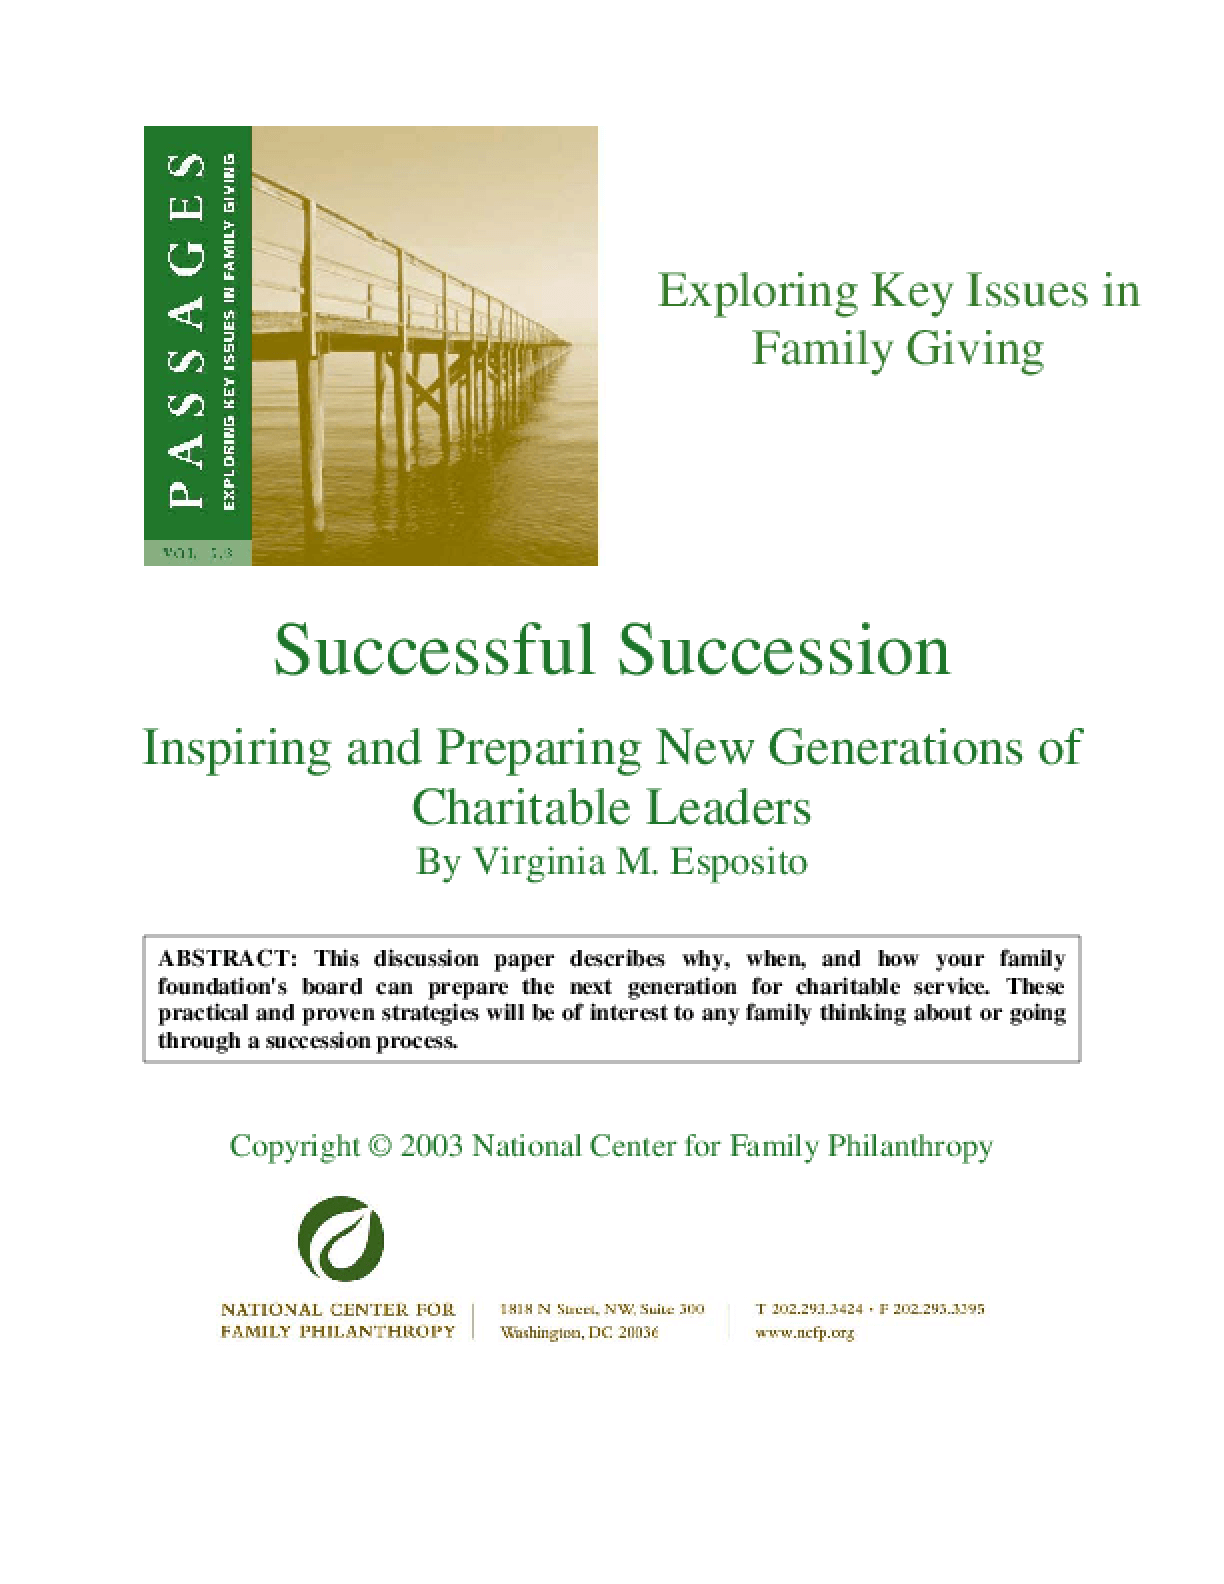 Successful Succession: Inspiring and Preparing New Generations of Charitable Leaders